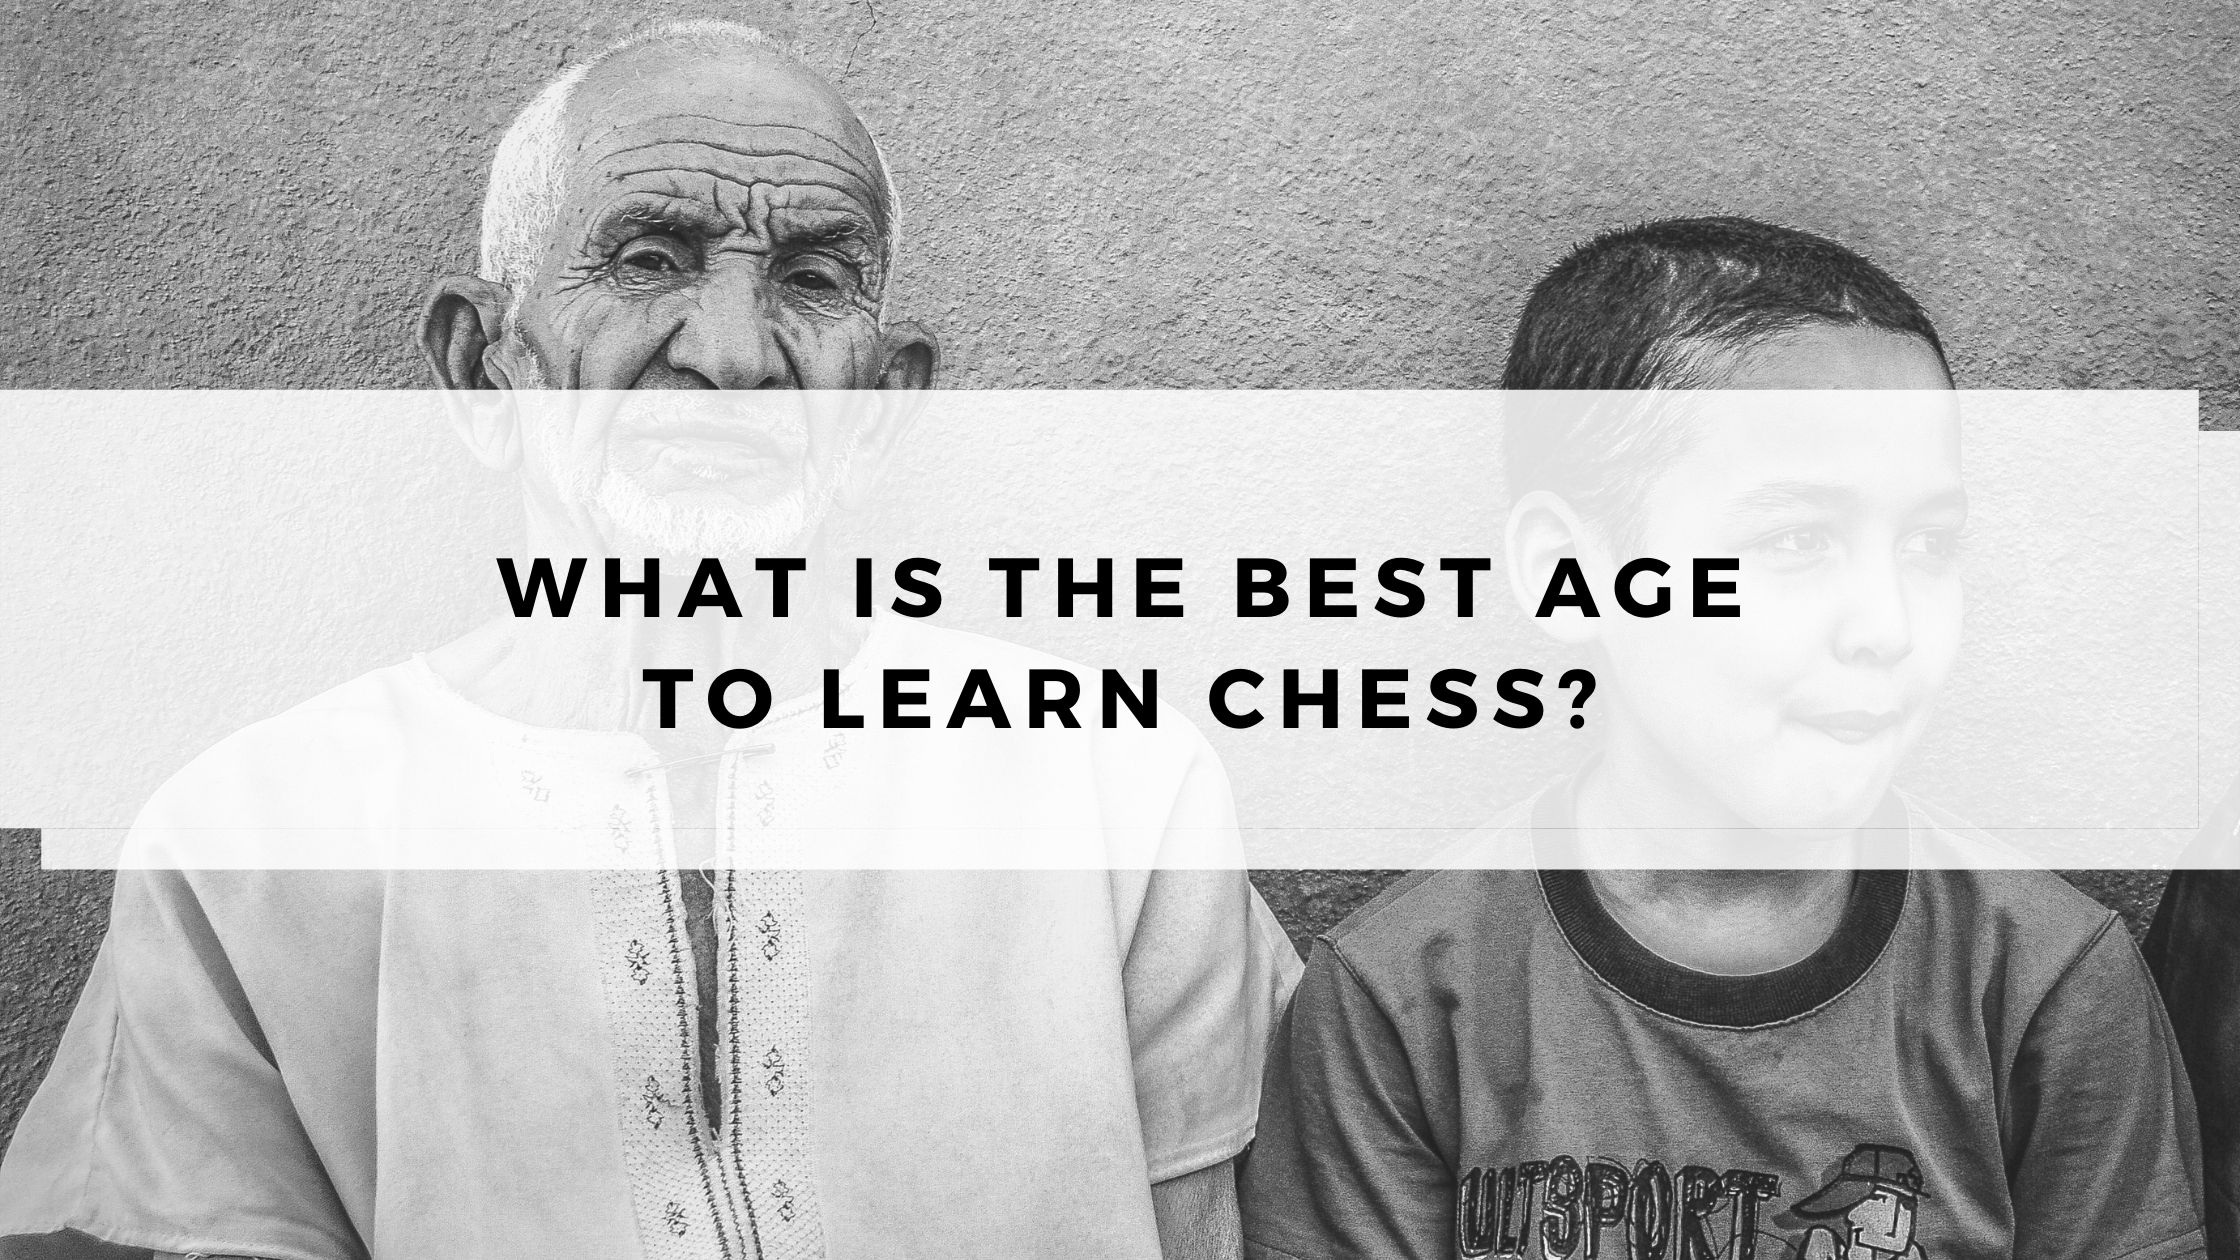 What Is The Best Age to Learn Chess?